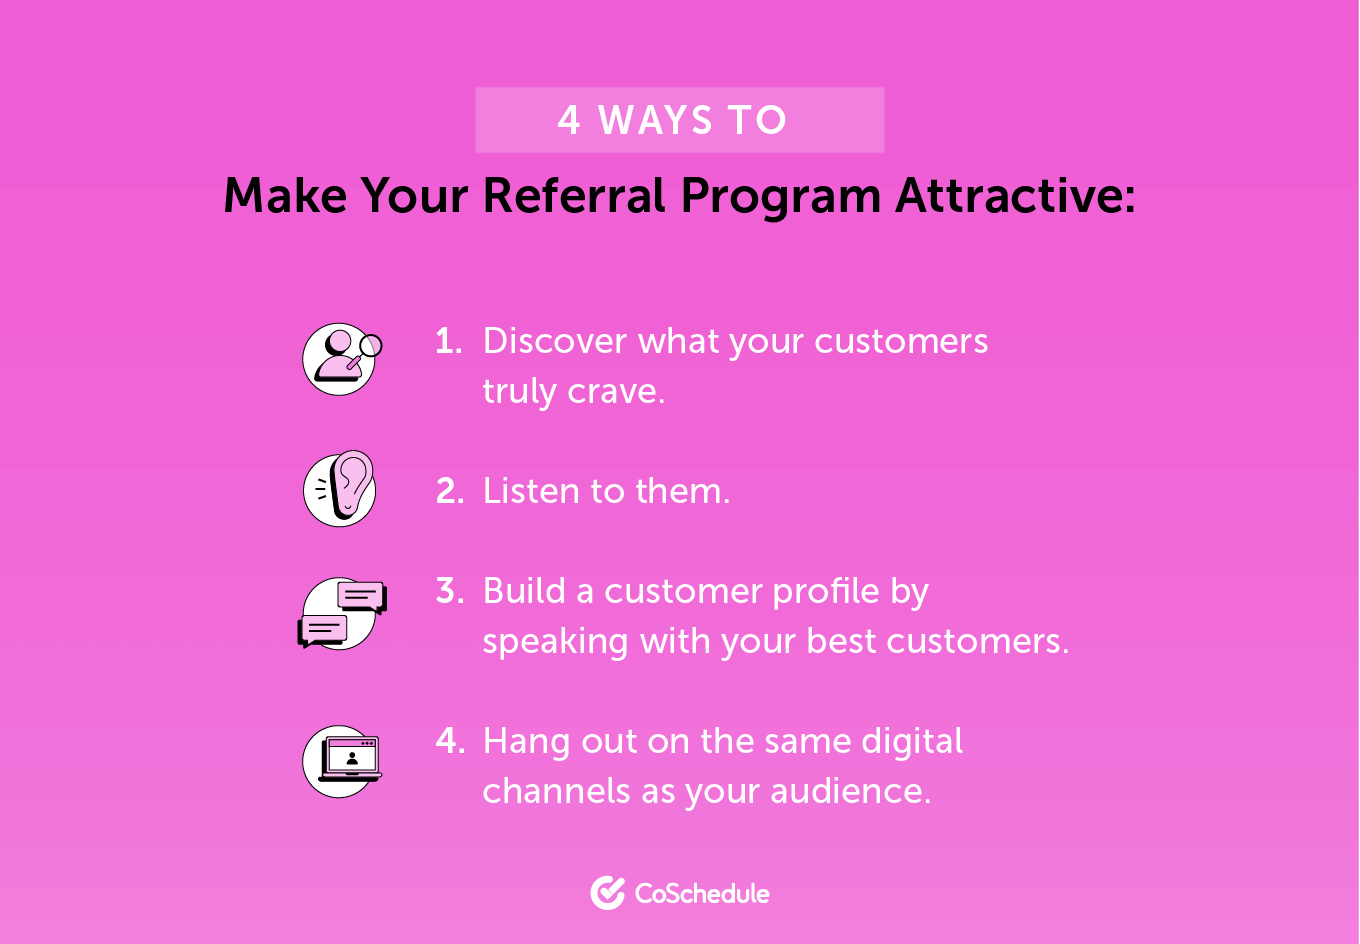 4 Ways to Make a Referral Program Attractive